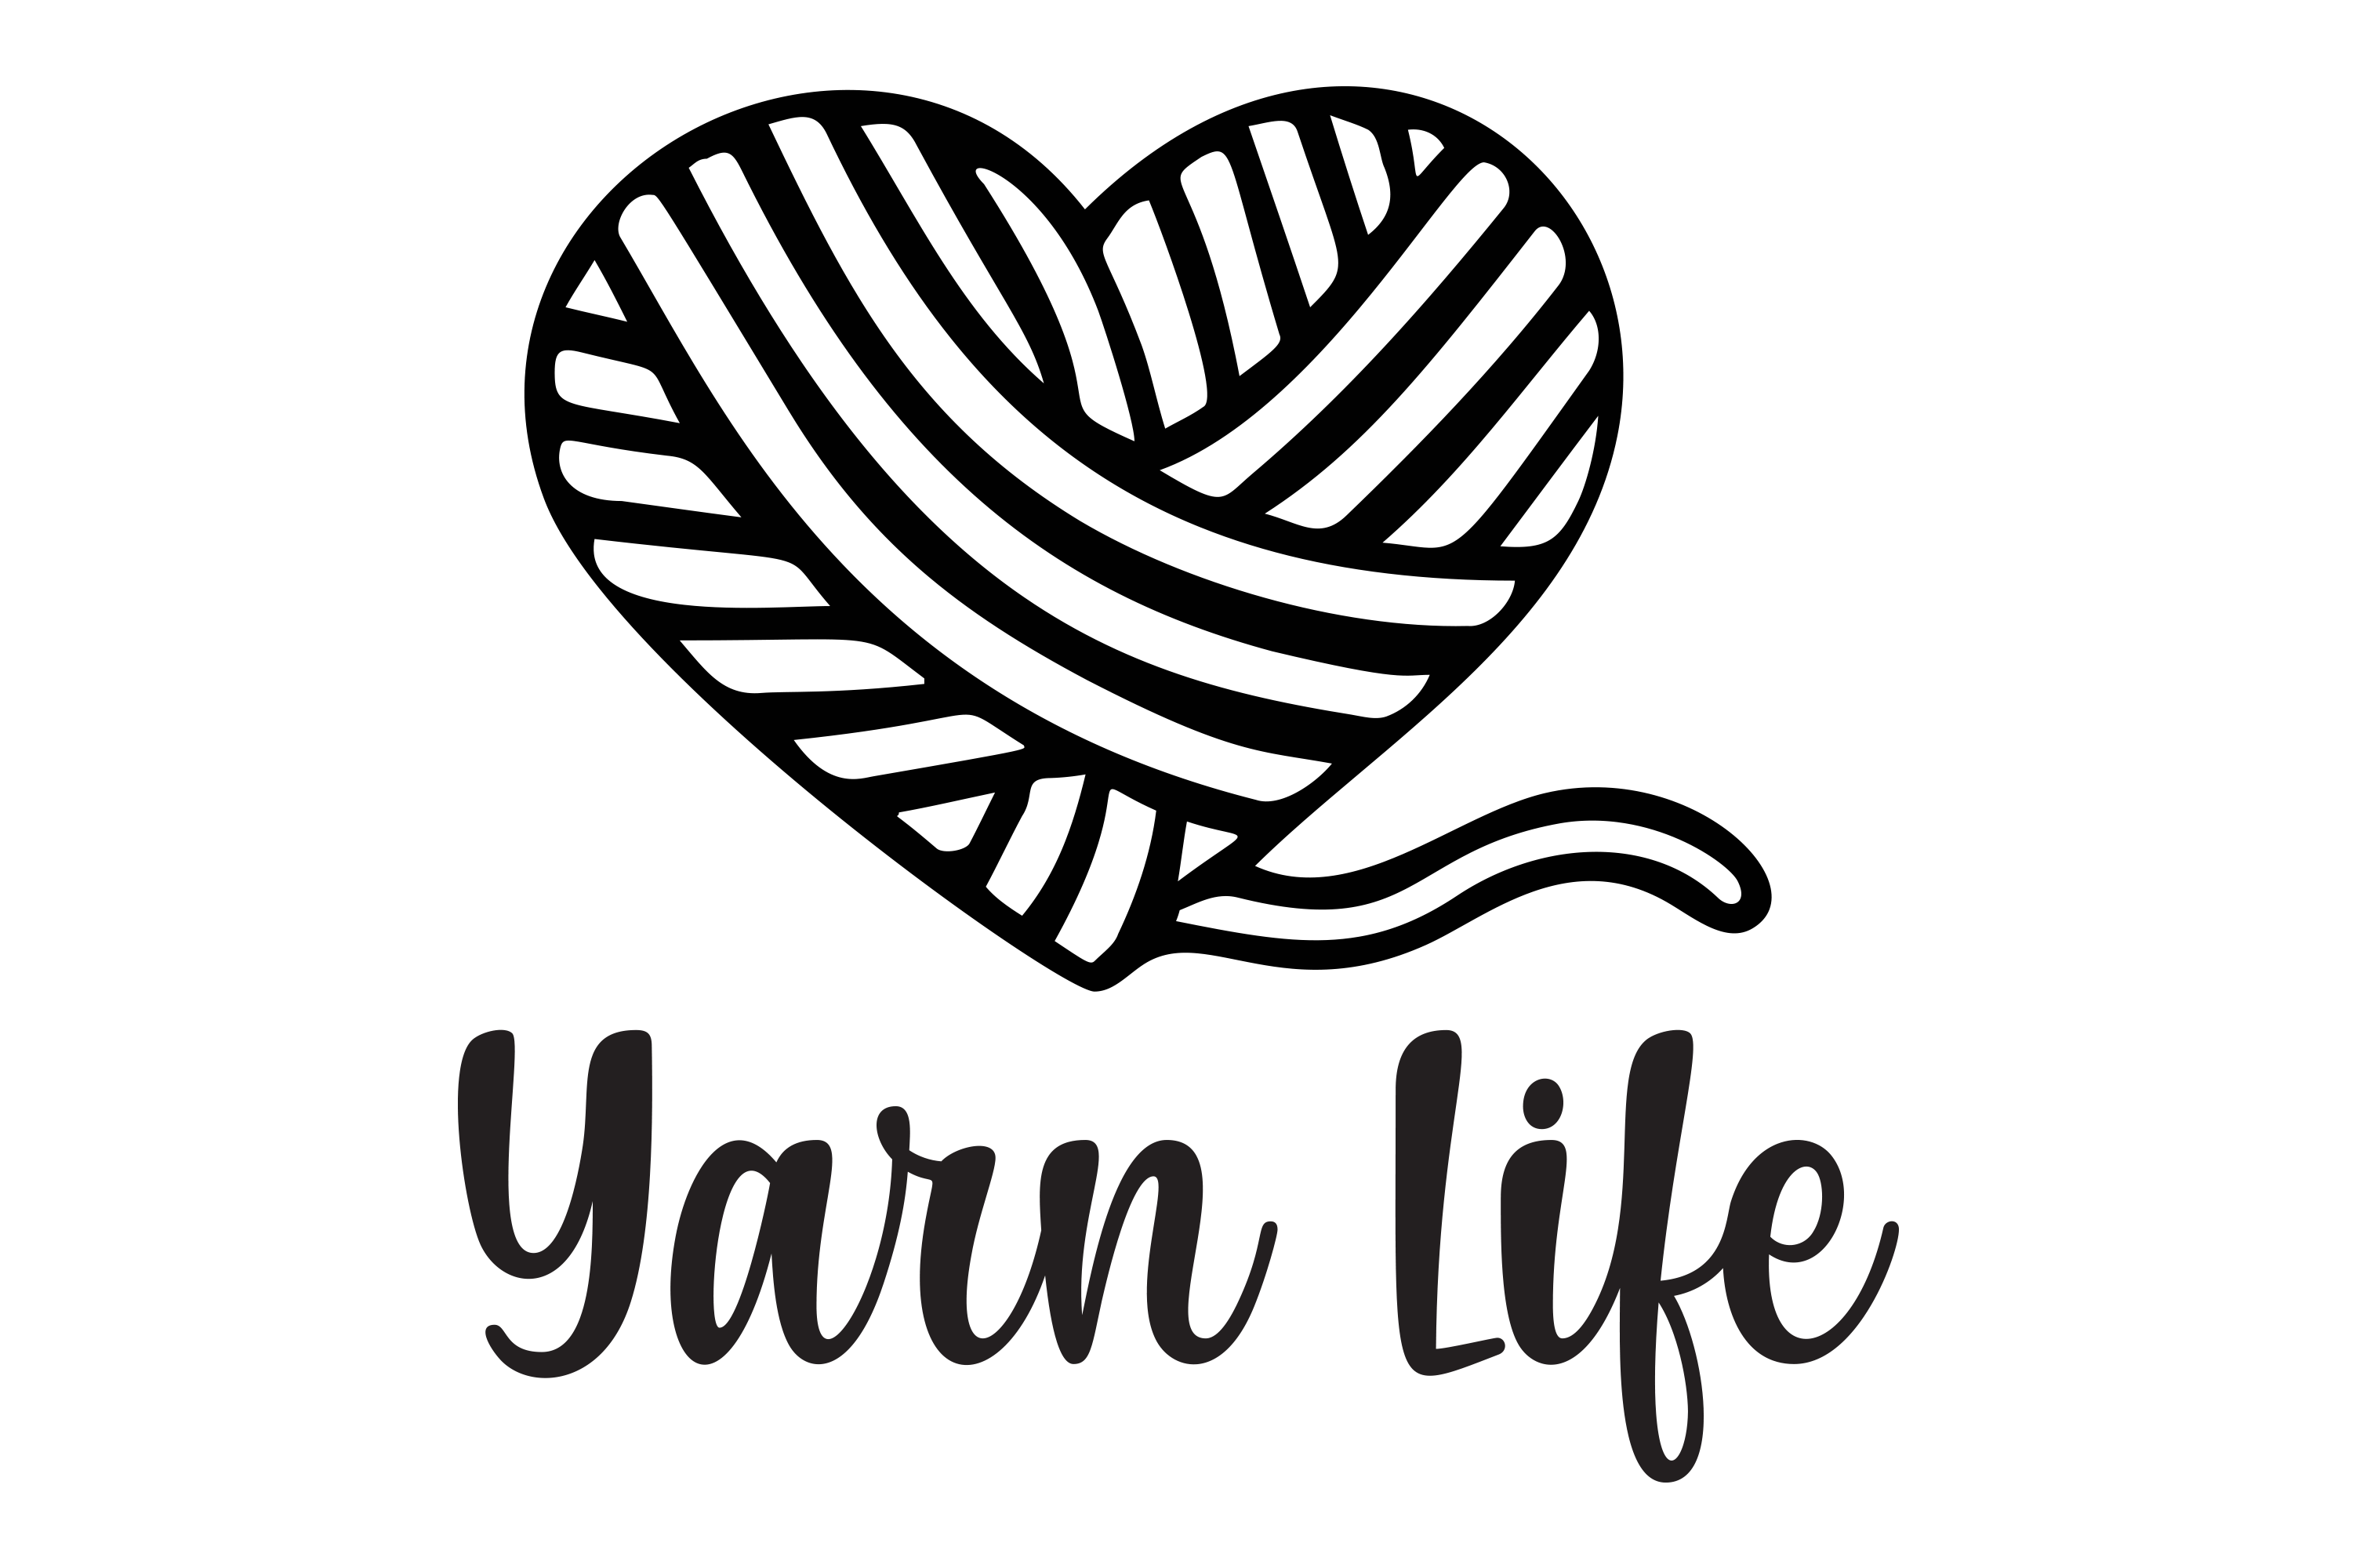 Download Free Yarn Life Knit Crochet Svg Heart Yarn Graphic By Am Digital for Cricut Explore, Silhouette and other cutting machines.